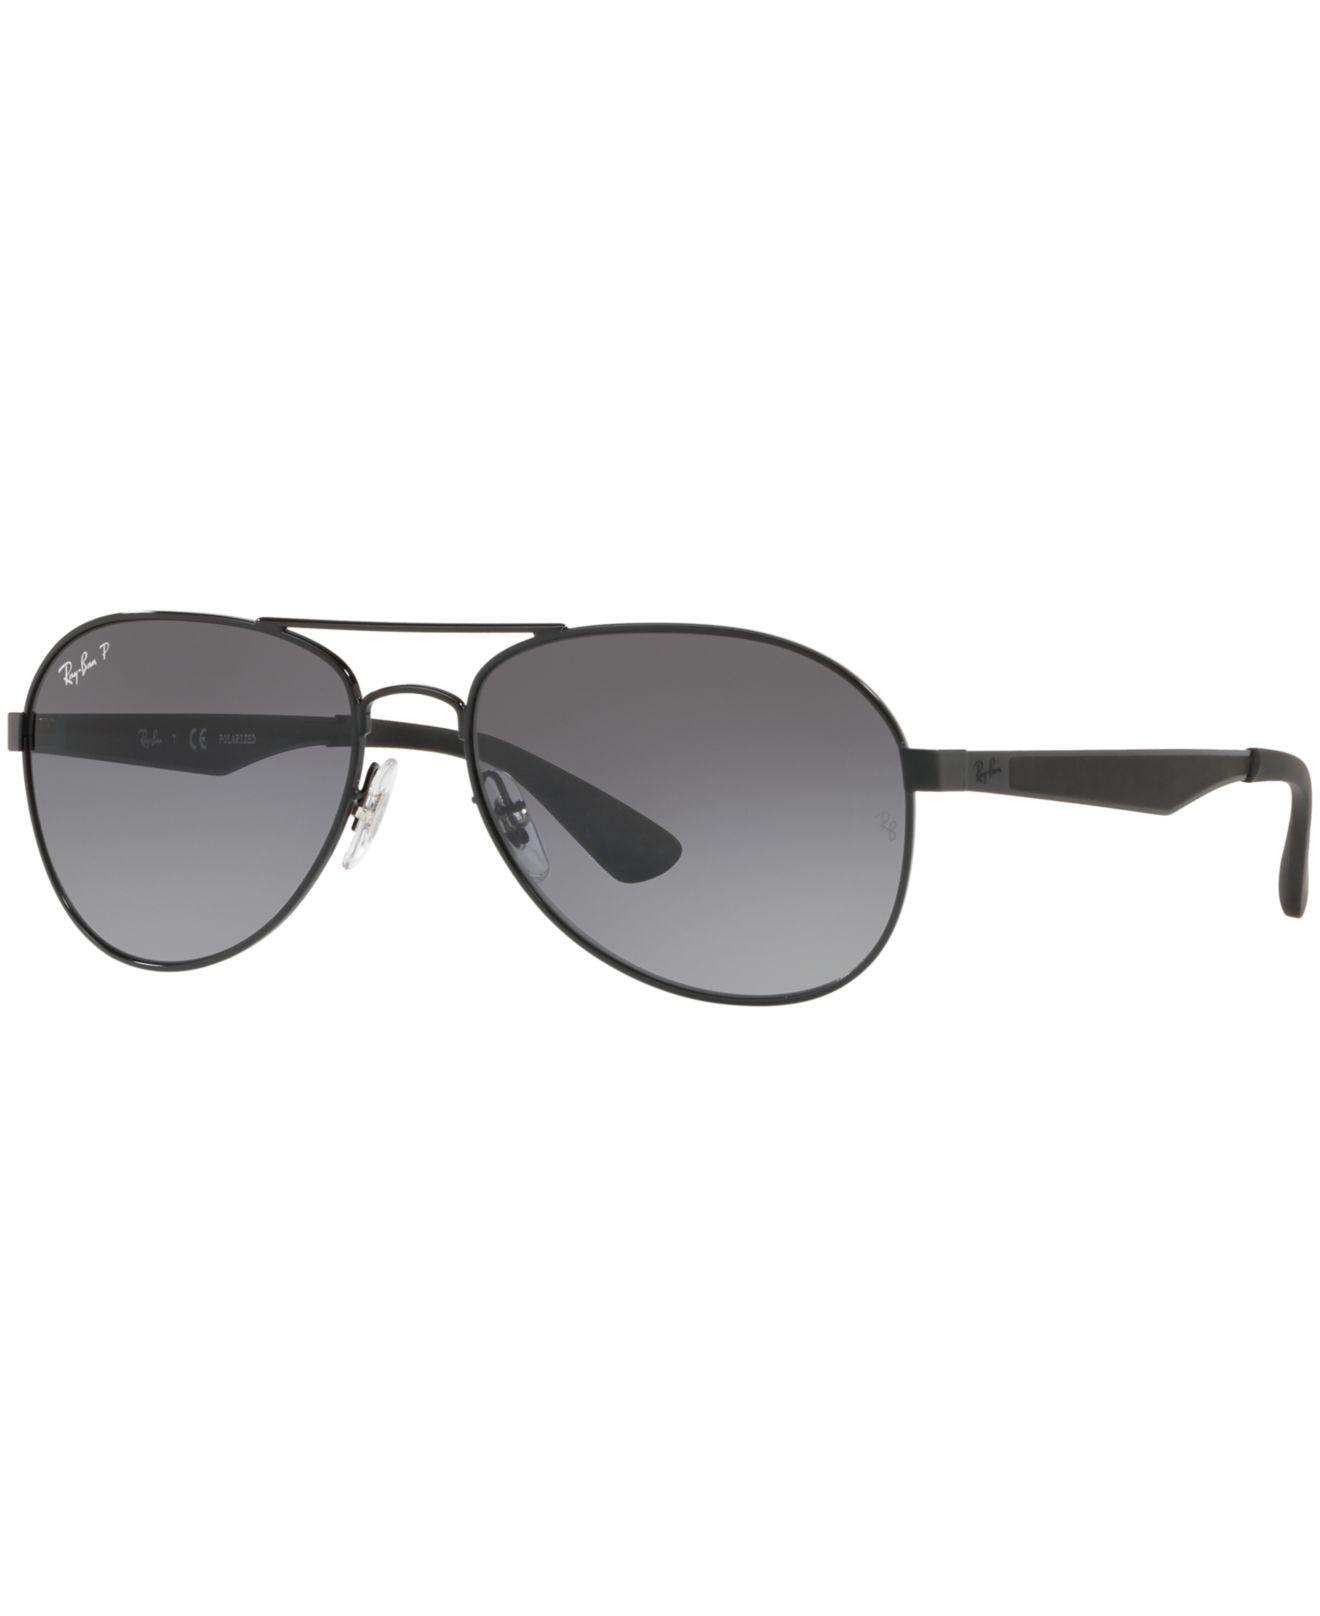 e921a66372 Ray-Ban. Men s Black Polarized Sunglasses ...